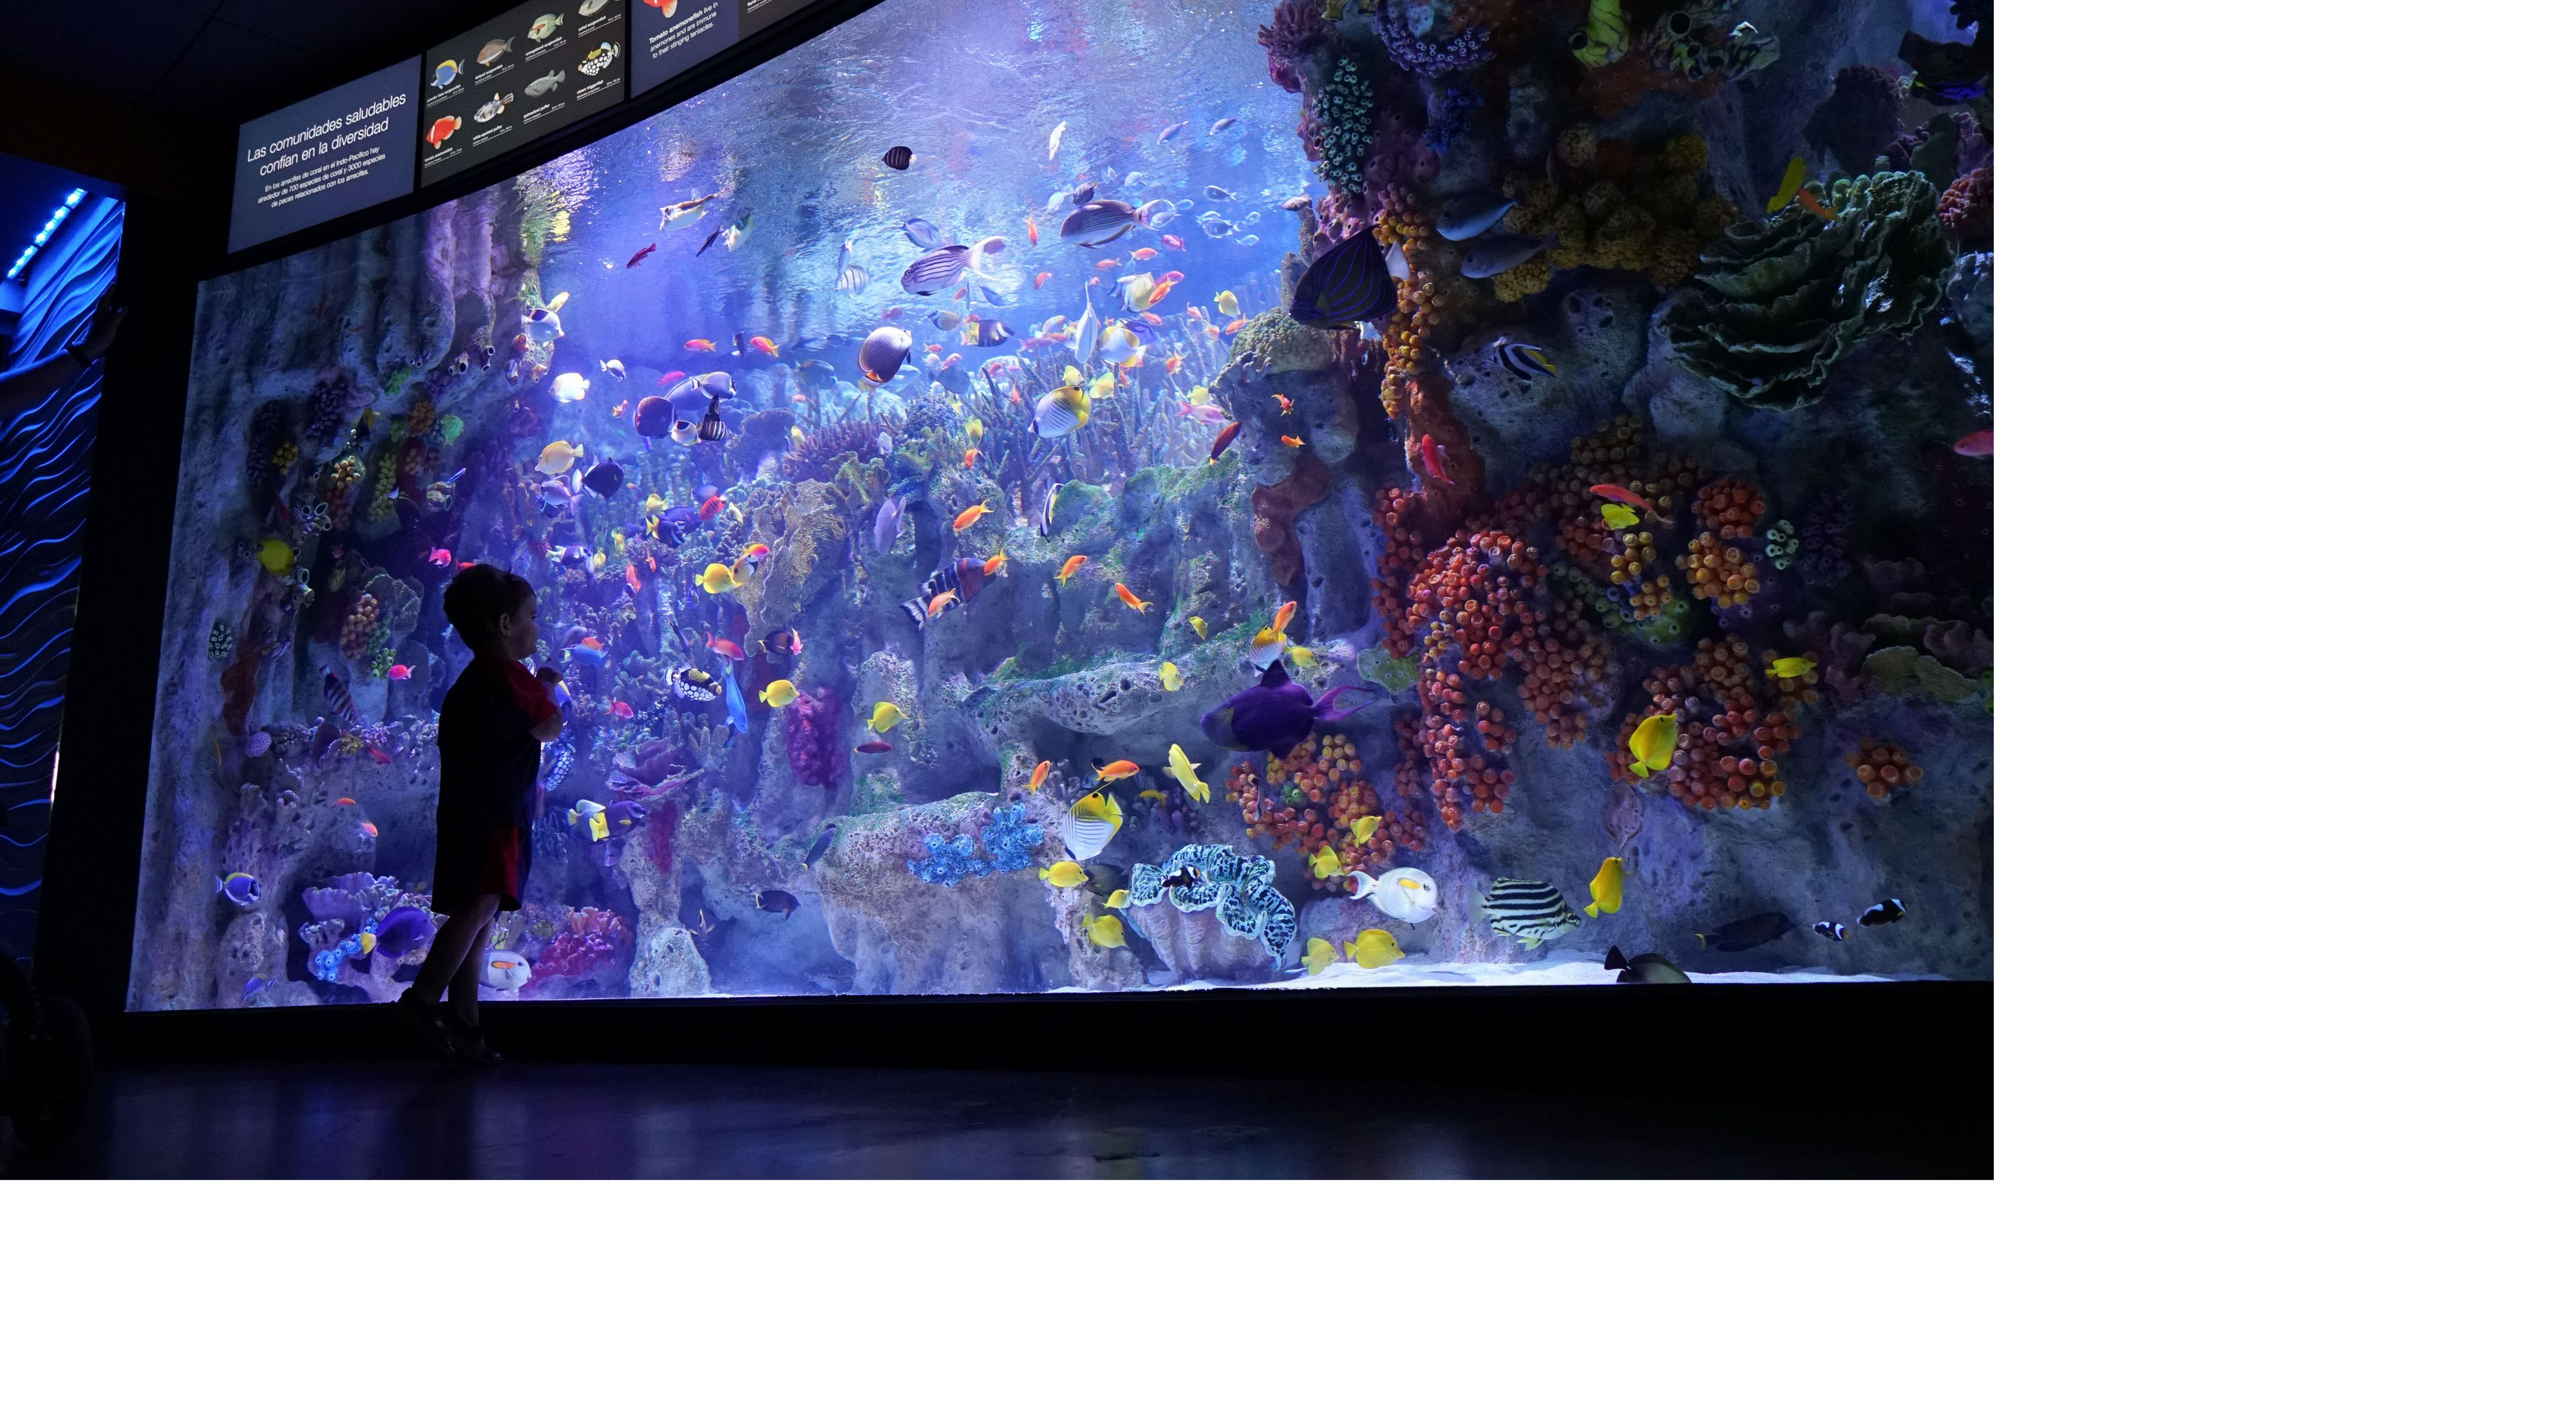 Silhouette of a child in front of a large aquarium fish tank filled with colorful fish and corals.